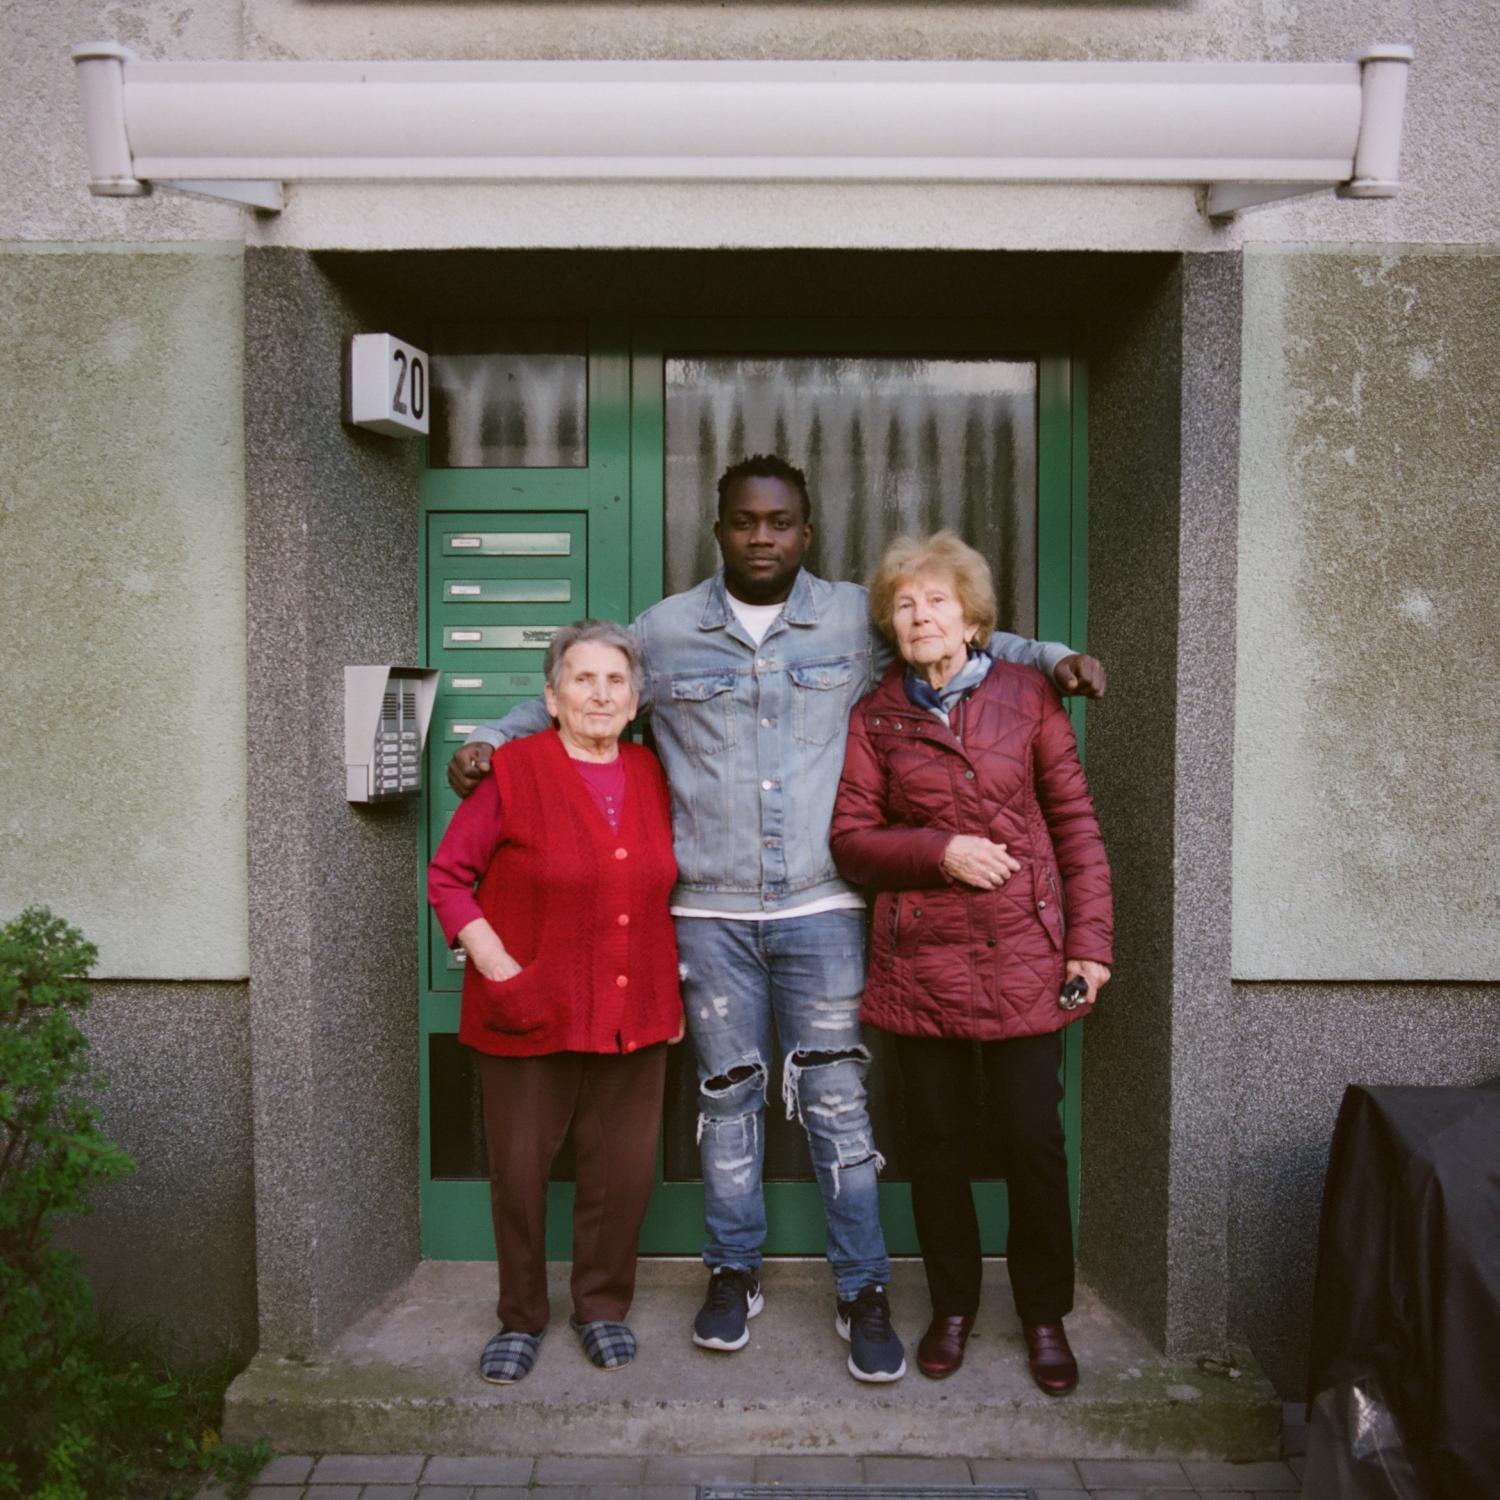 Art and Documentary Photography - Loading Eric_with_two_neighbours_in_Hohenstu__cken__Brandenburg__2.jpg